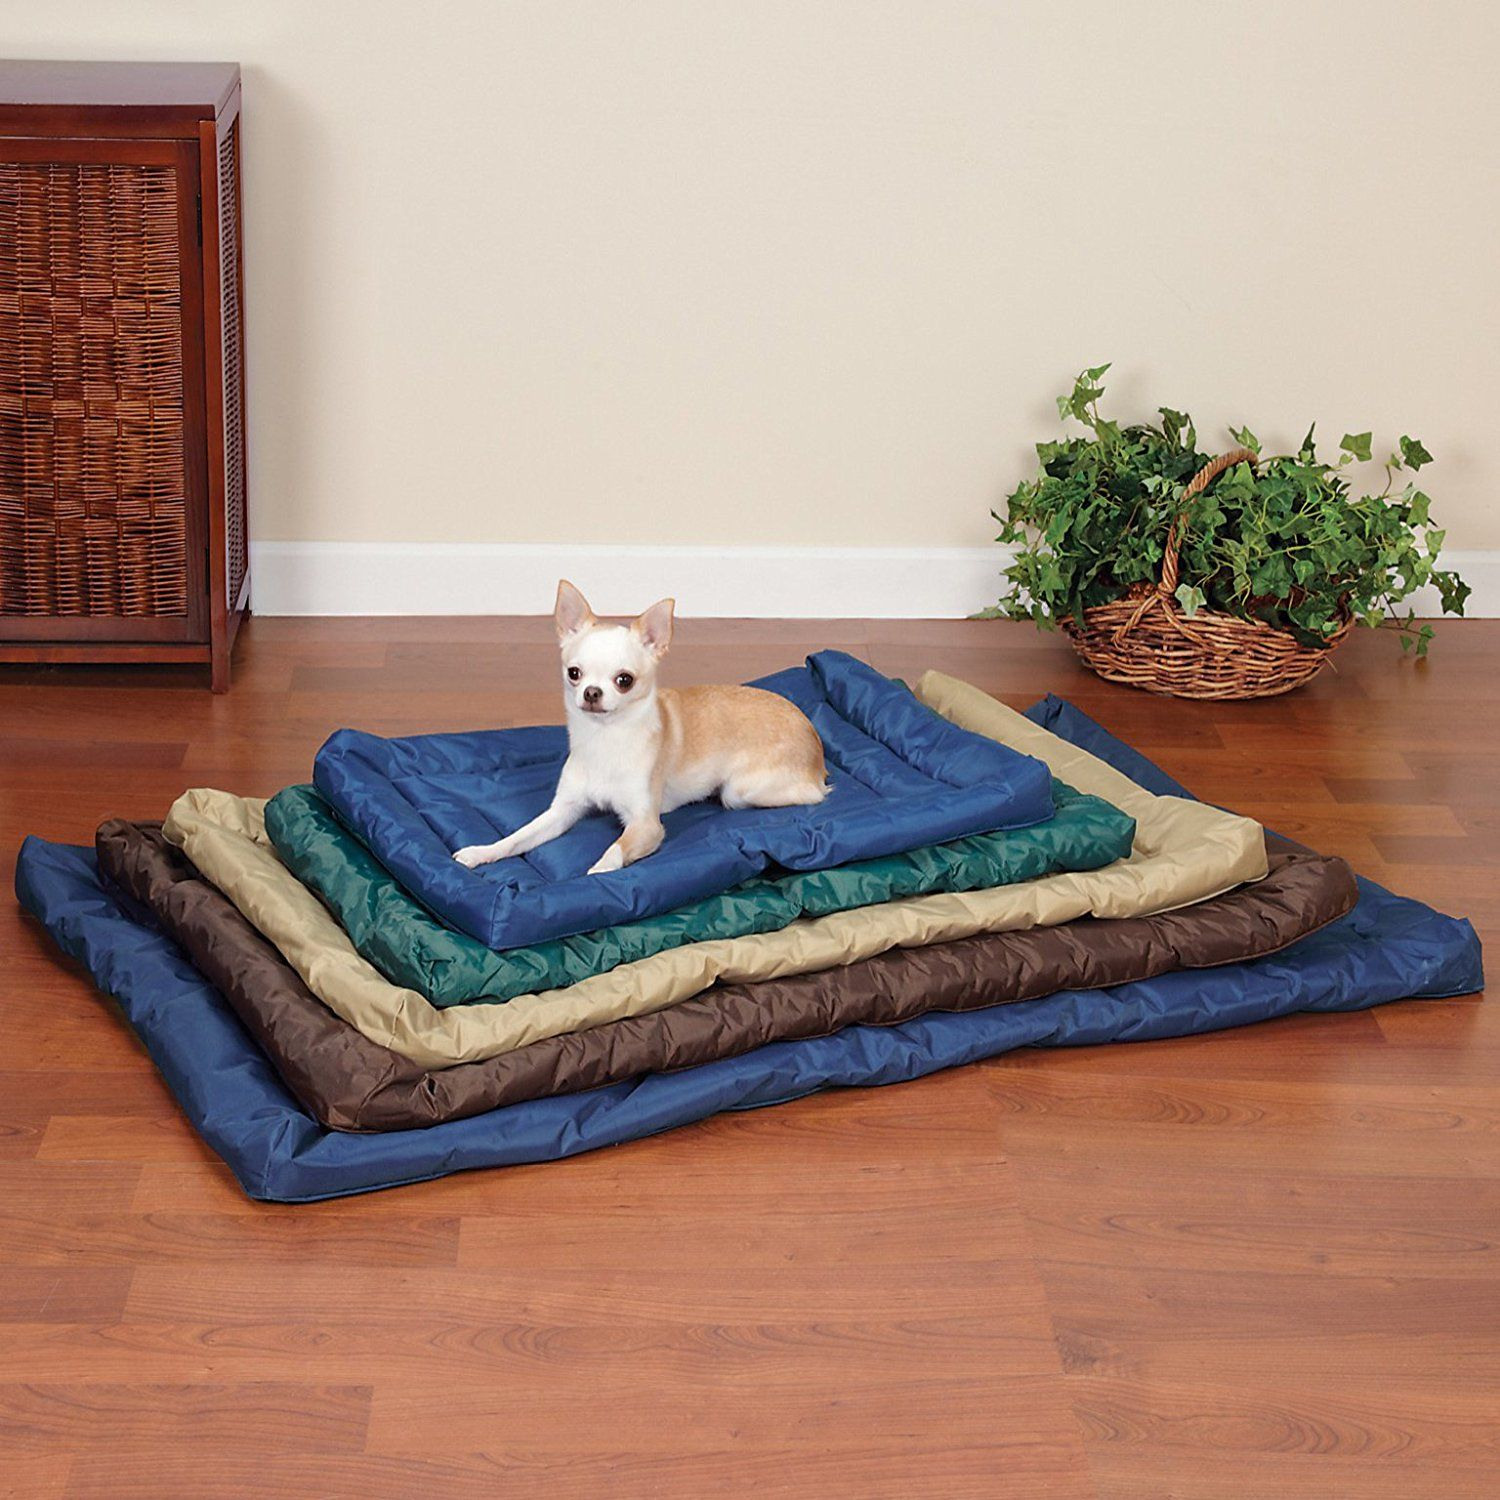 Kratos Aegean Blue Crate Cover Up Set Dog crate cover